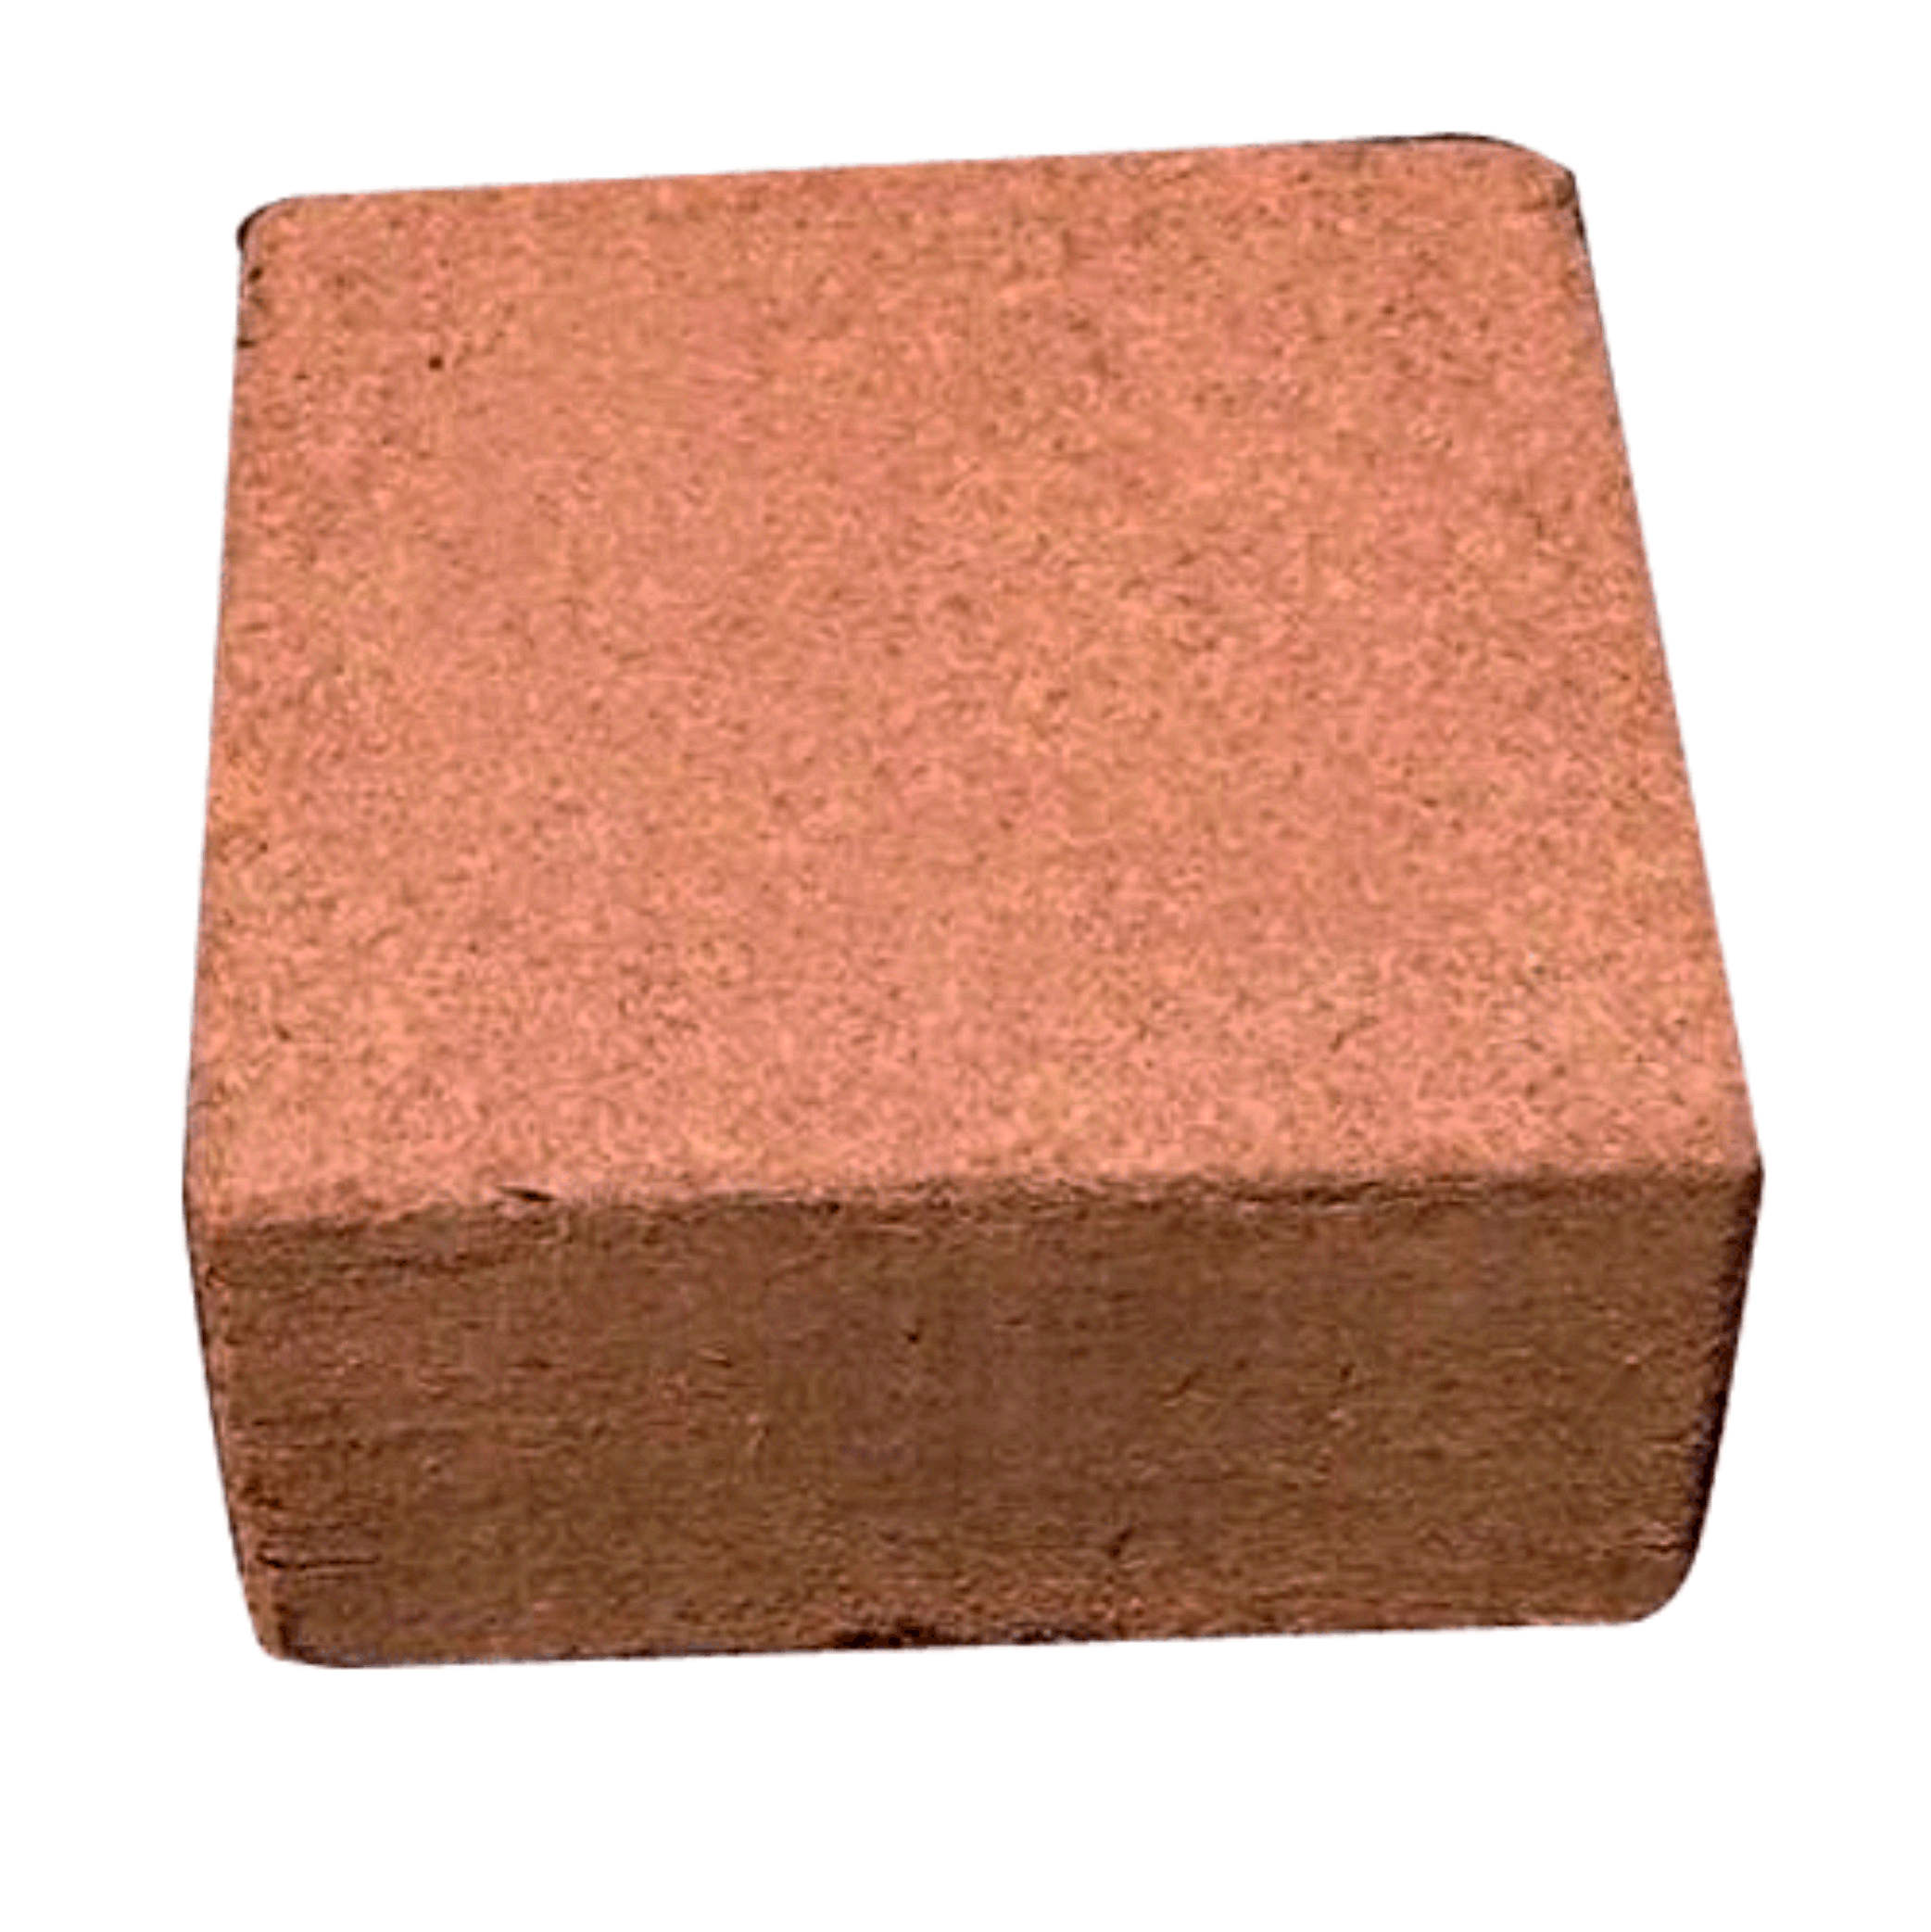 COST EFFECTIVE PEAT MOSS BALTIC SPHAGNUM COIR BLOCKS